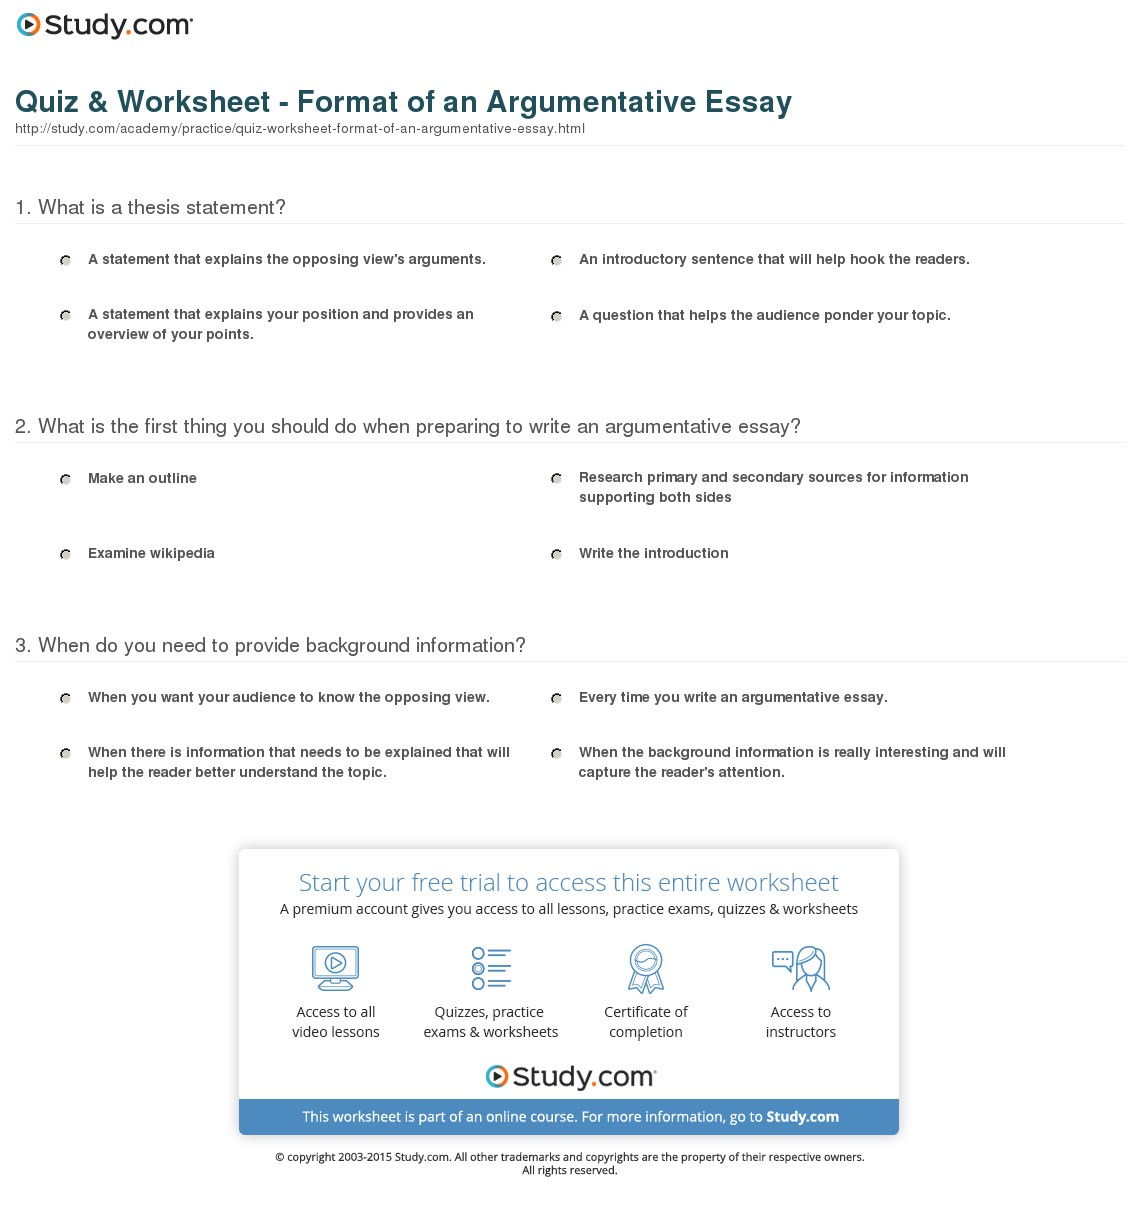 001 Essay Example Which List Best Describes The Organization Of An Argumentative Quiz Worksheet Fearsome Brainly Full